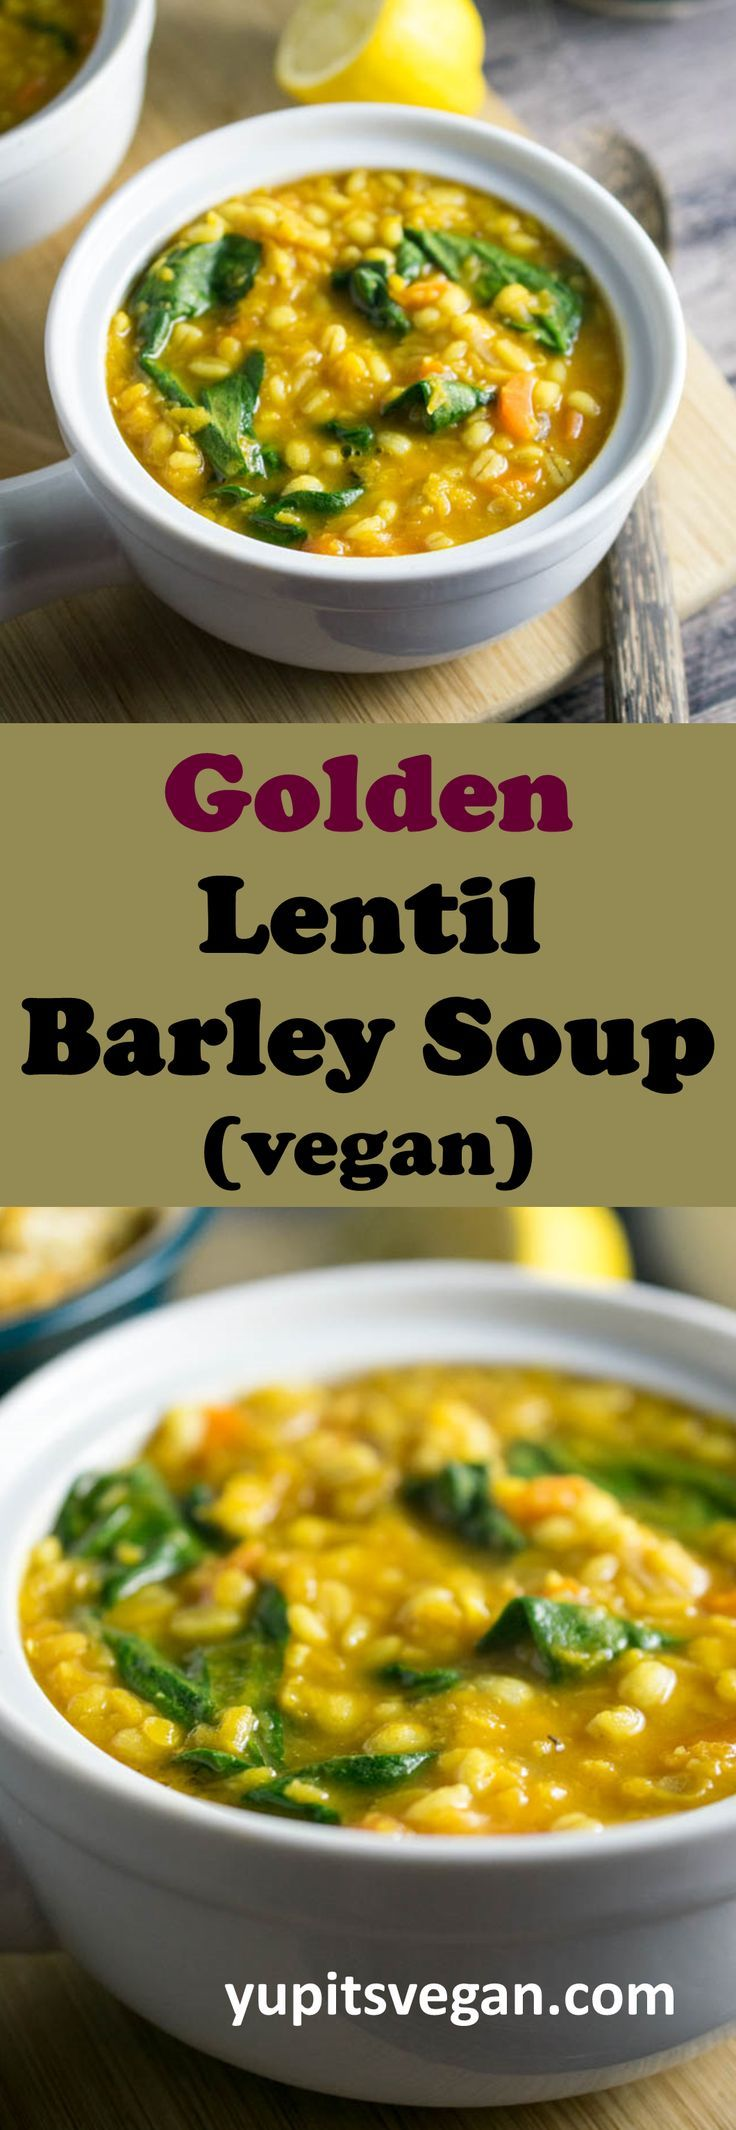 17 Best ideas about Barley Salad on Pinterest | Cooking ...